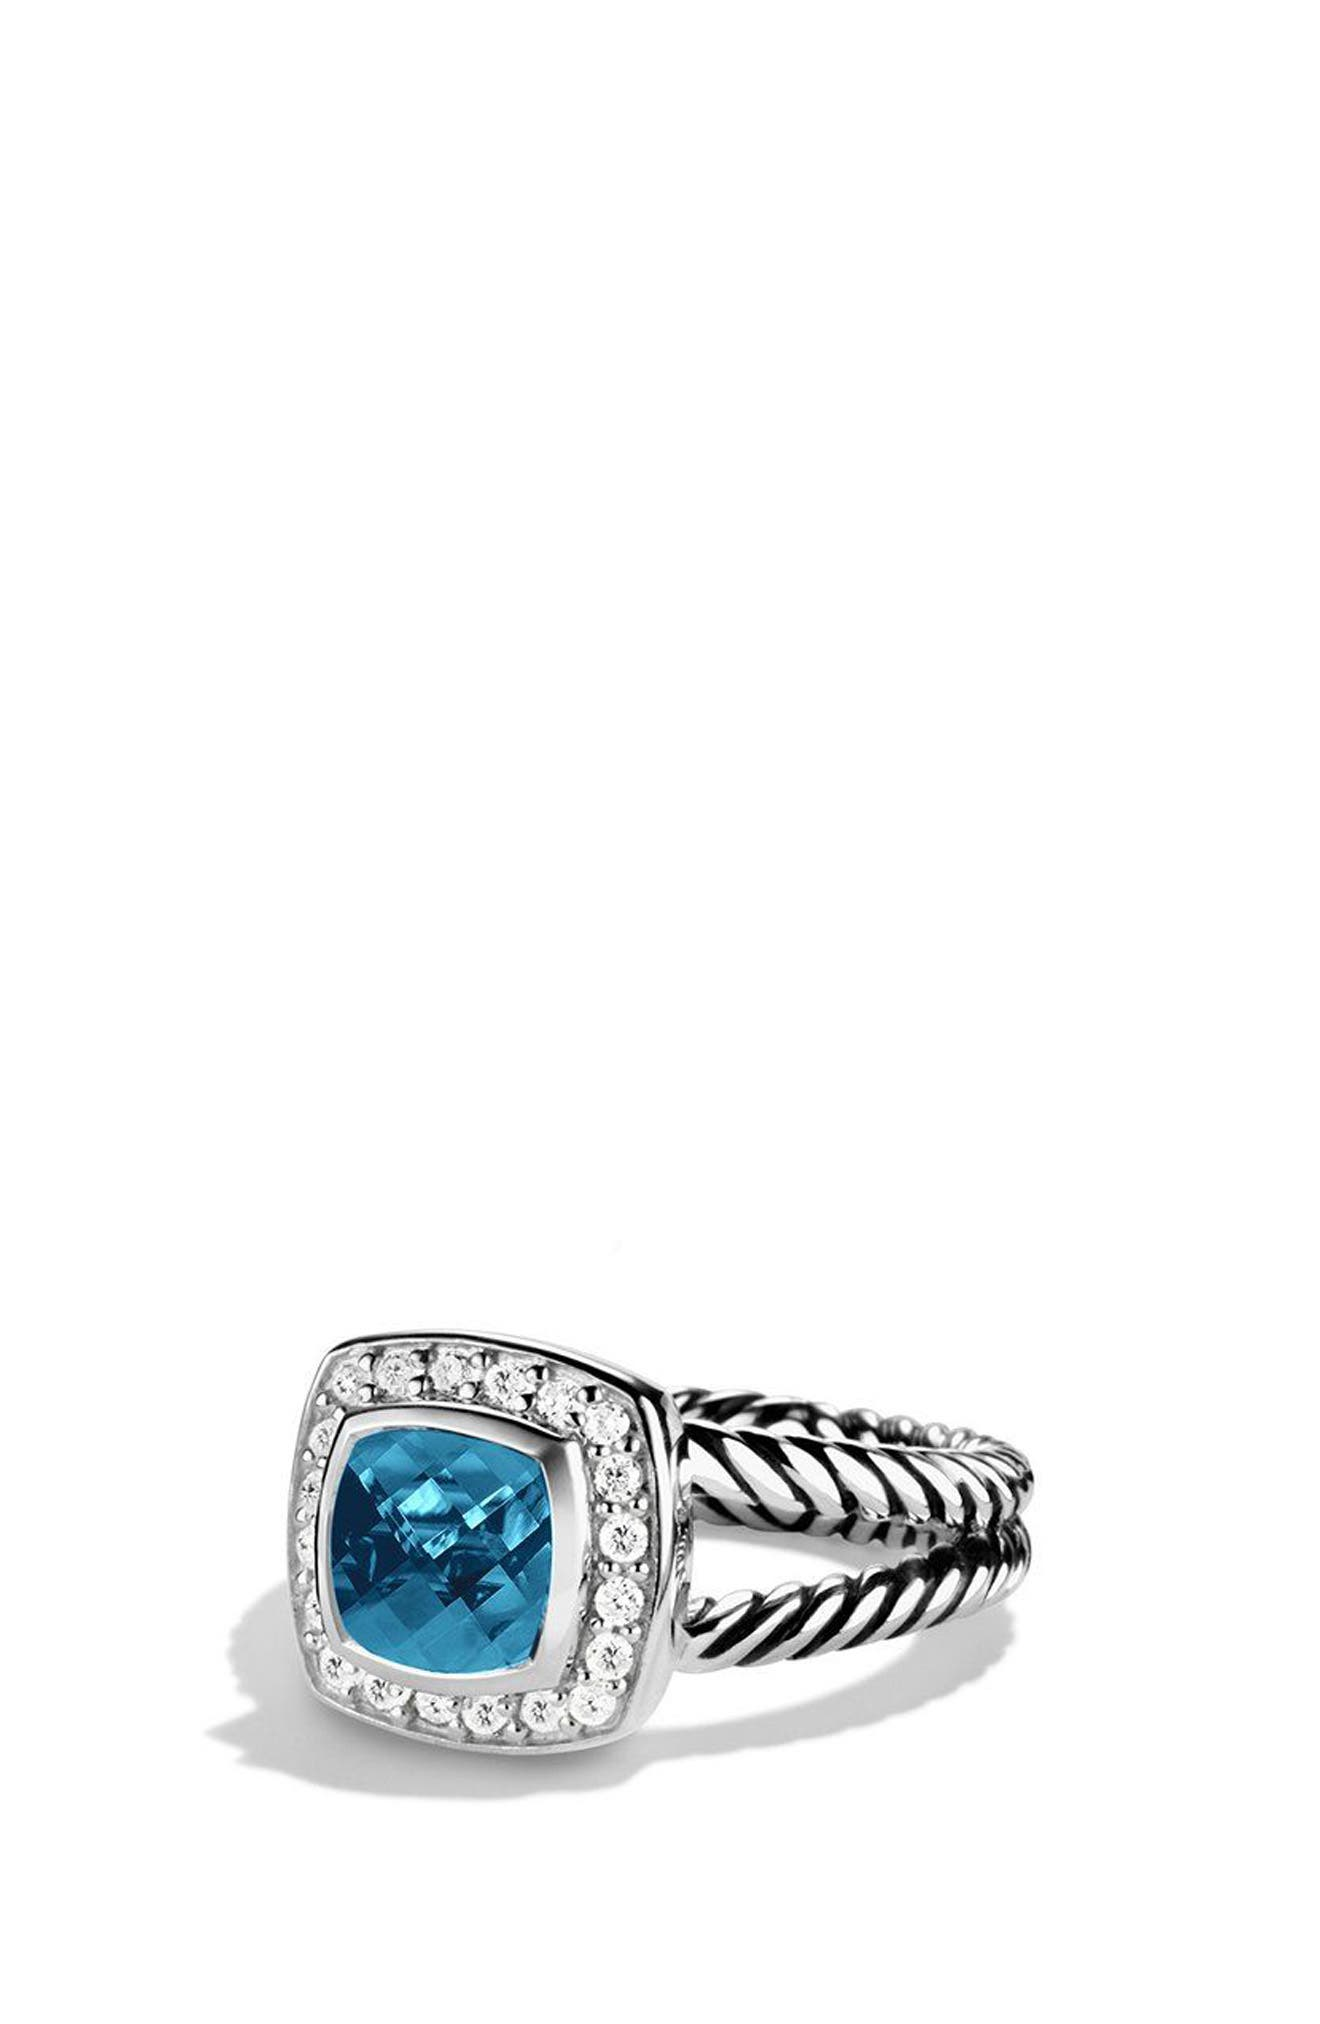 Alternate Image 1 Selected - David Yurman Petite Albion® Ring with Diamonds